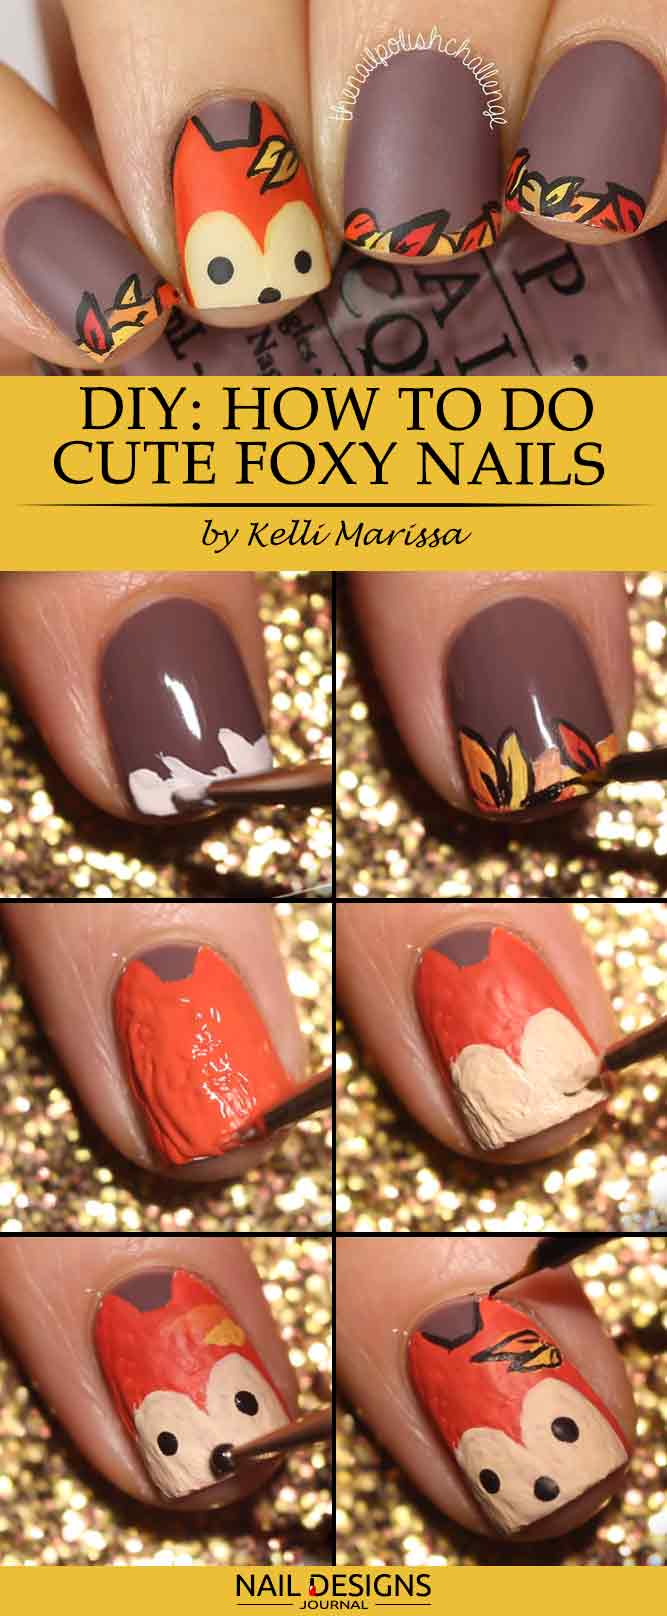 DIY How to Do Cute Foxy Nails